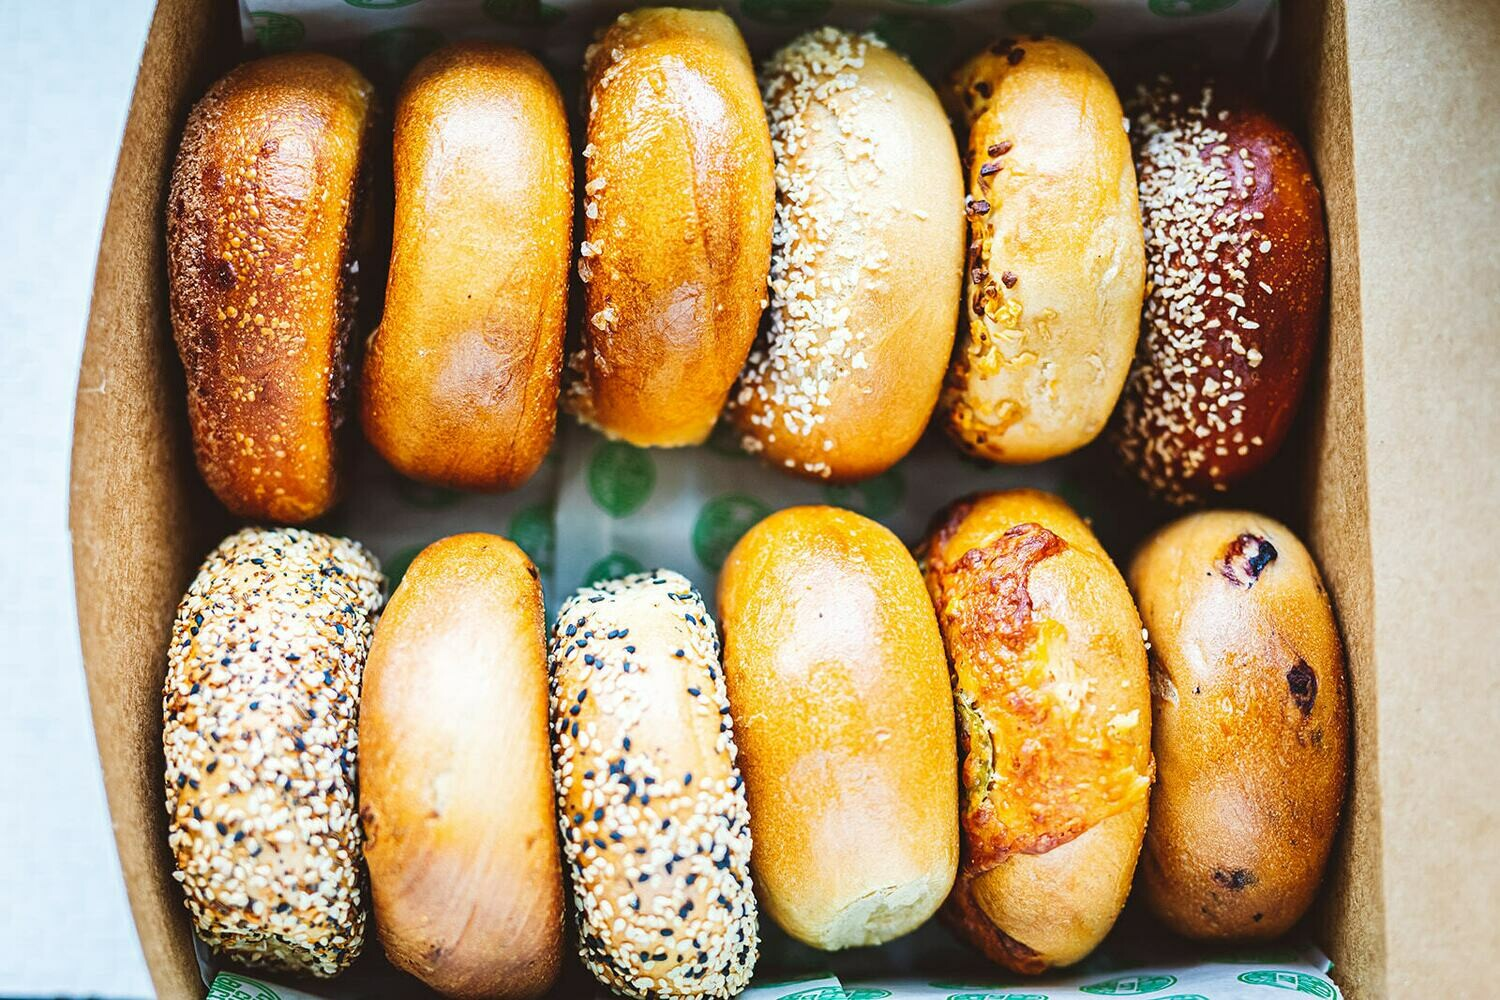 Bagel Fairy Drop: Atlanta Local! (See below for delivery details)